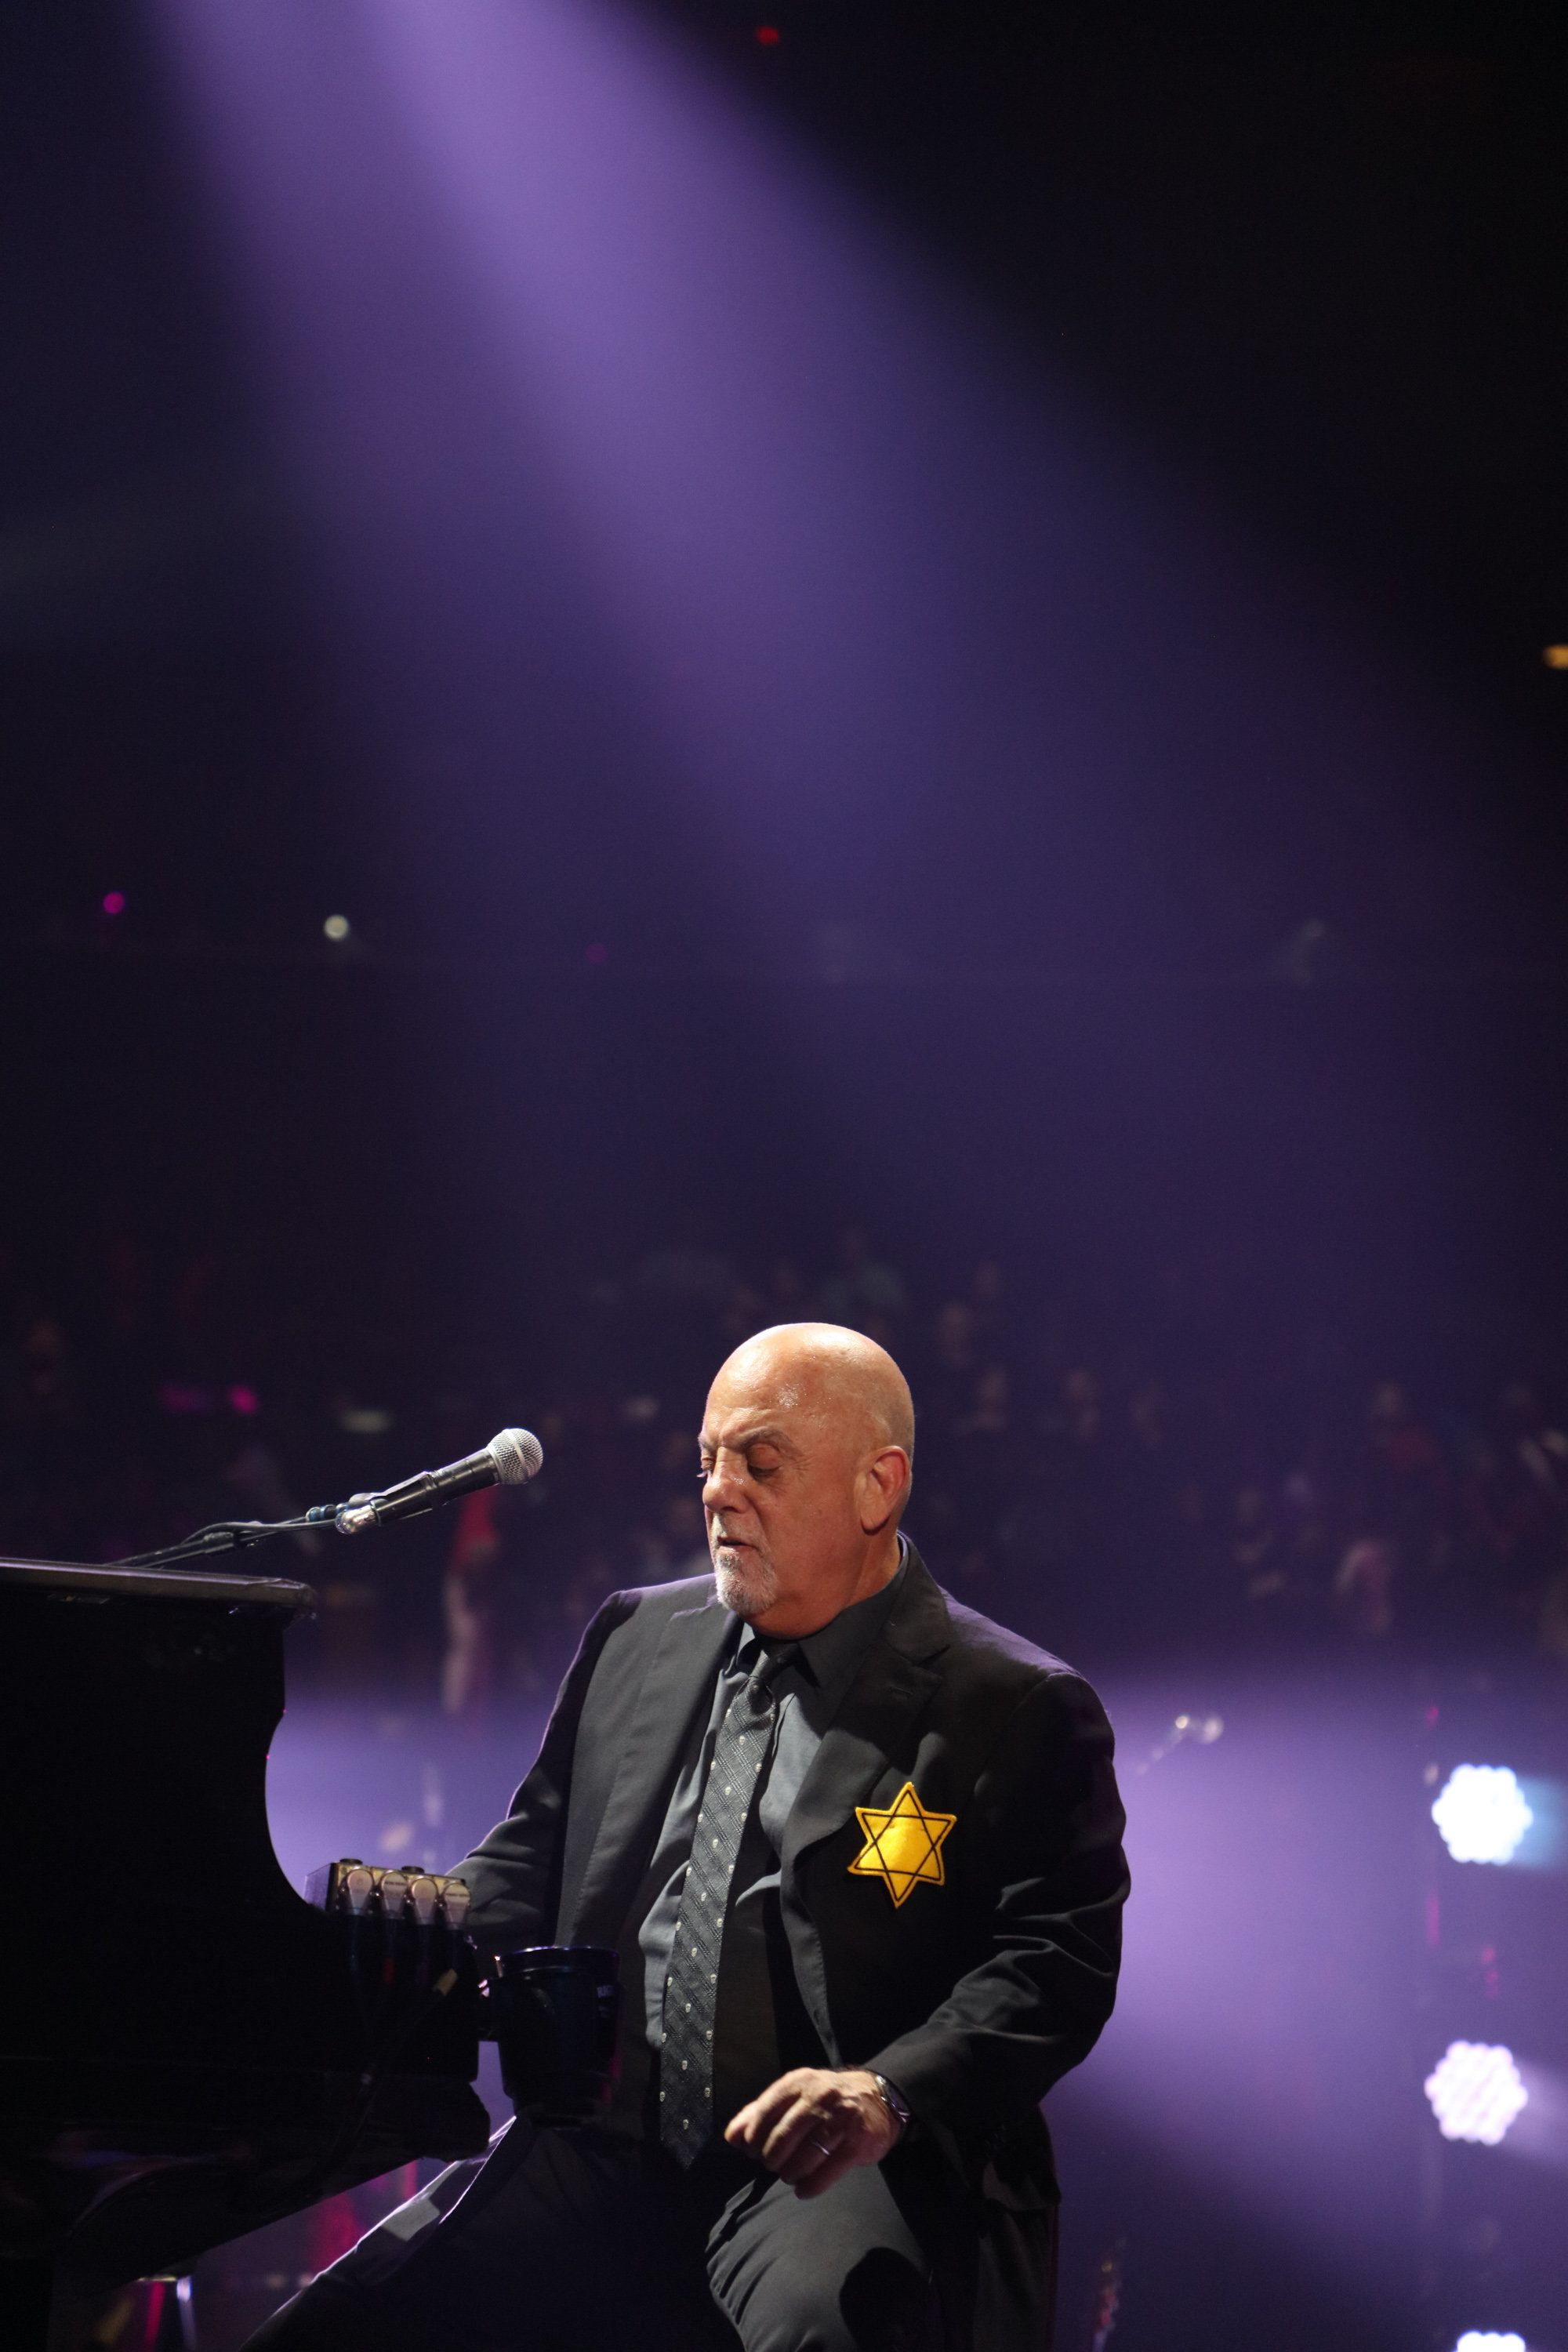 Billy Joel Wears Star Of David During Sold-Out Show In